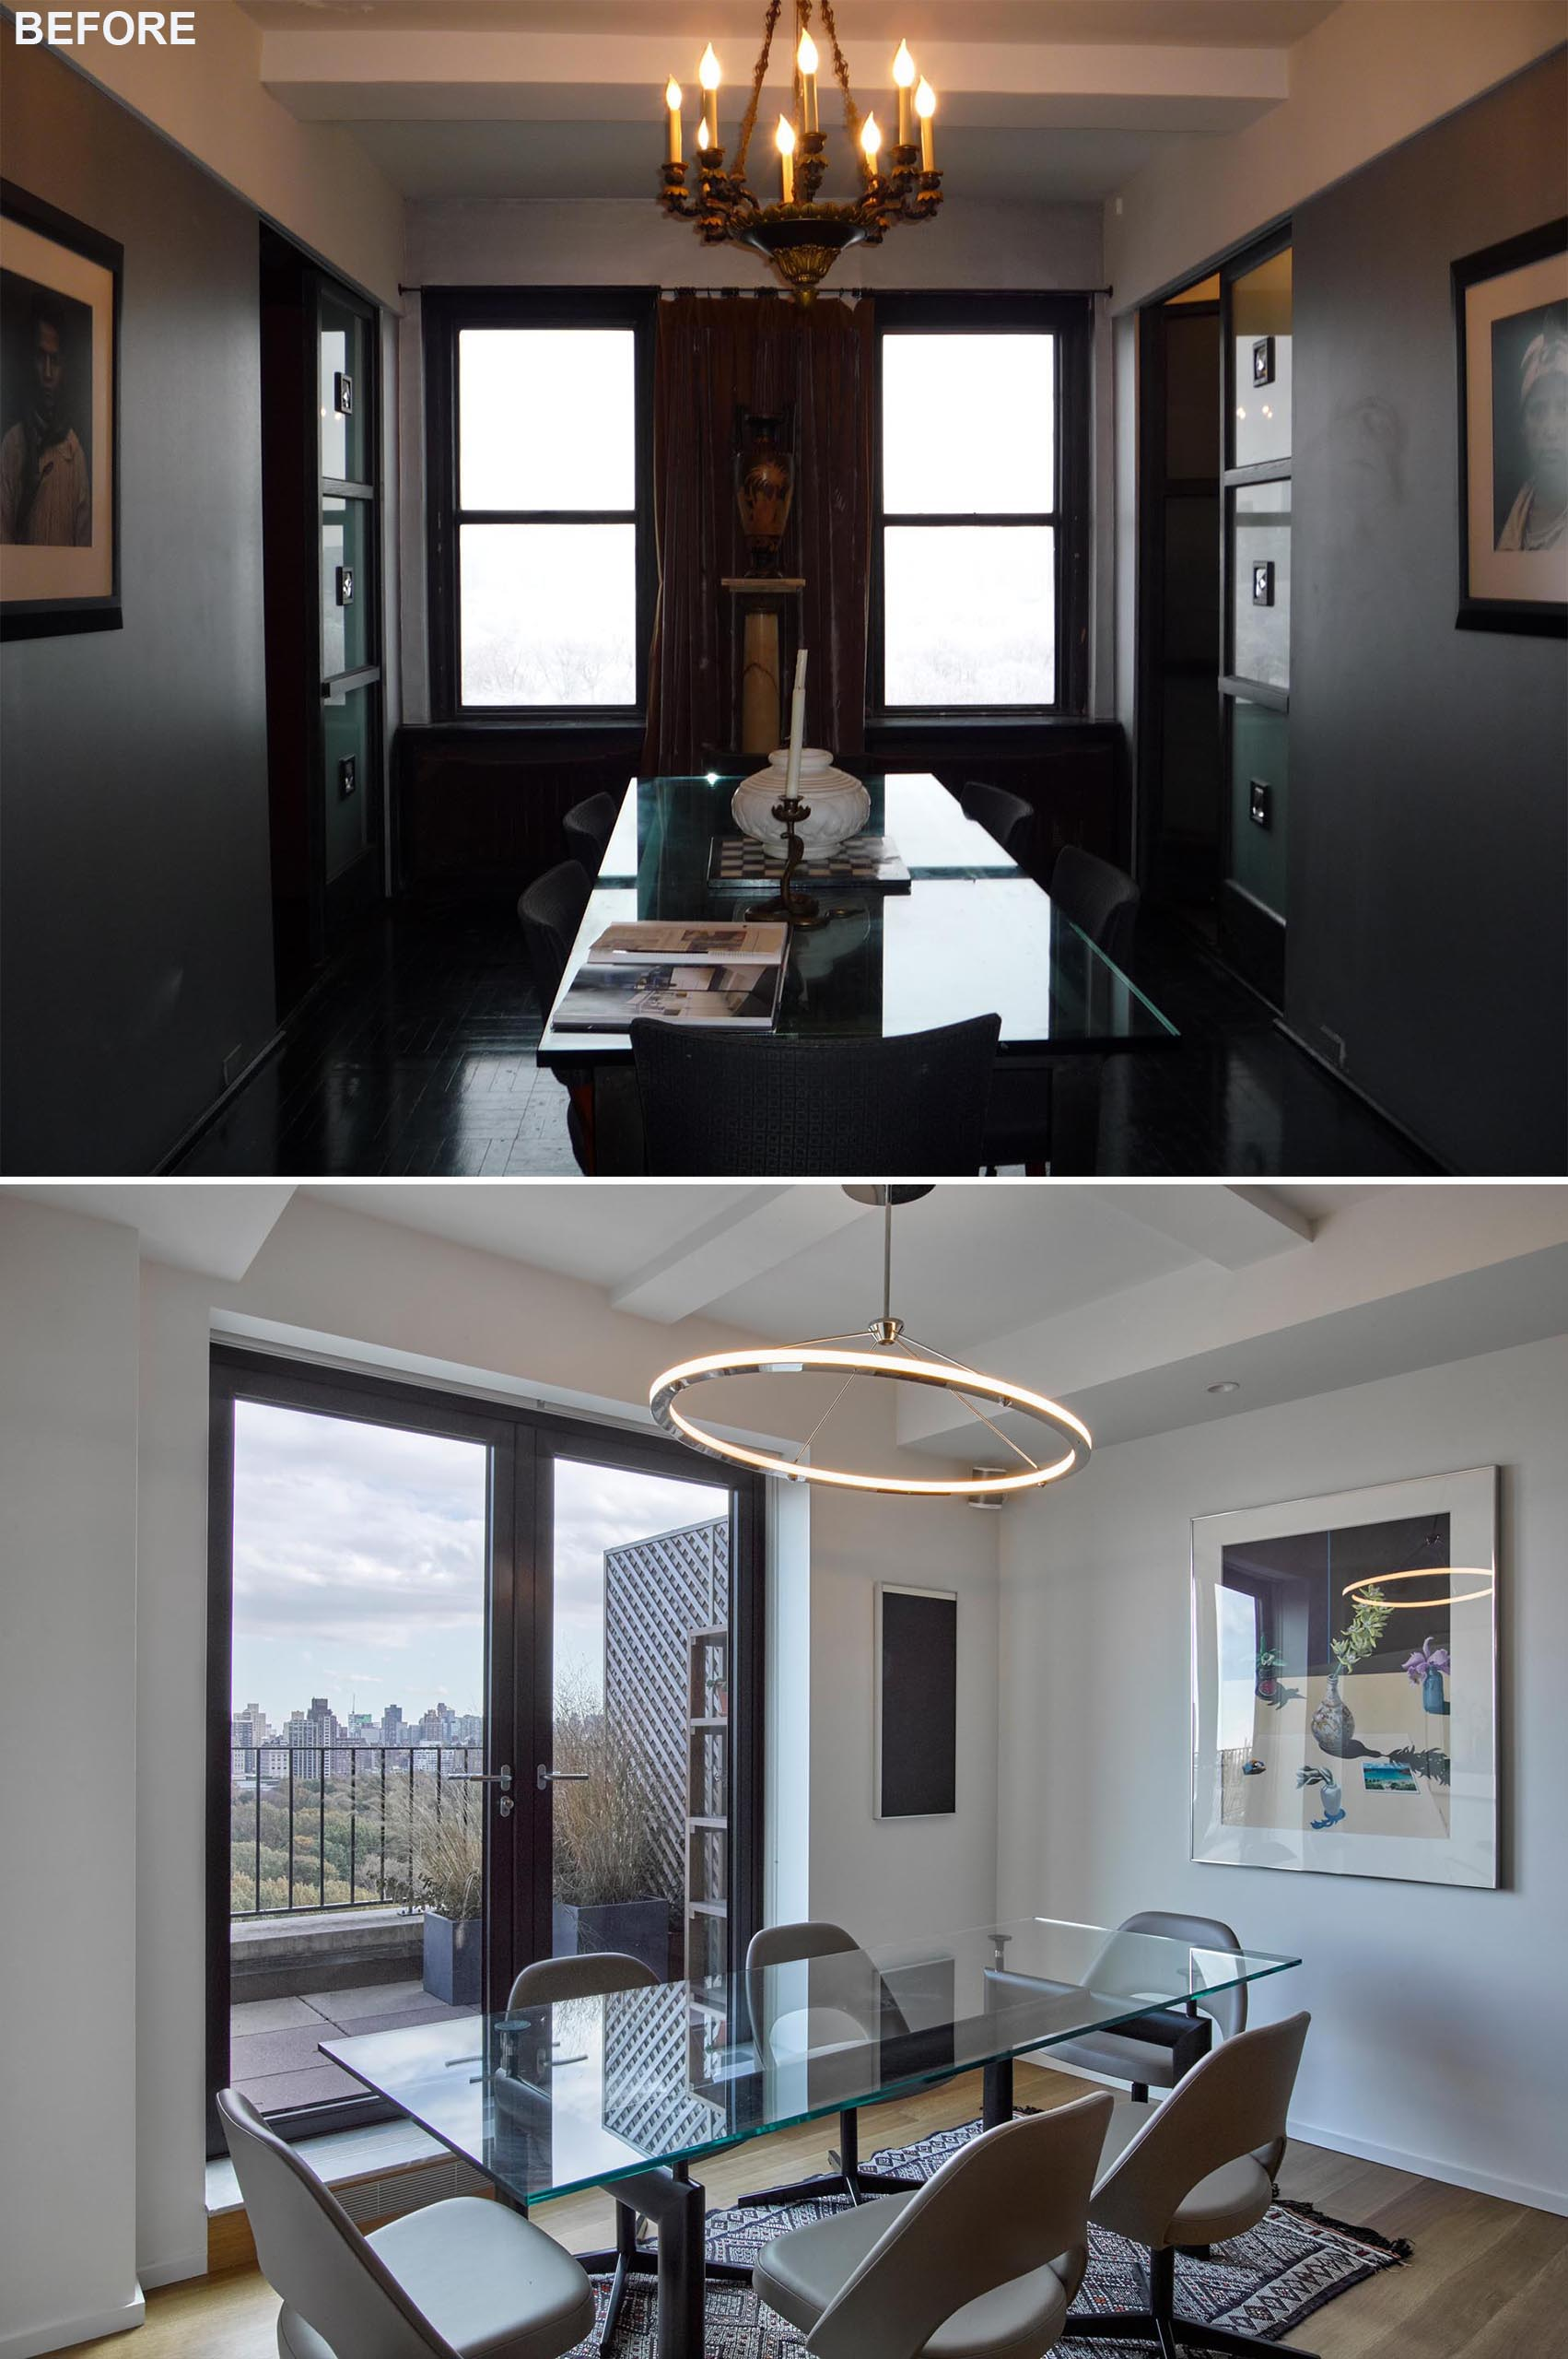 A dining room remodel transformed a dark space into a bright and open dining area.